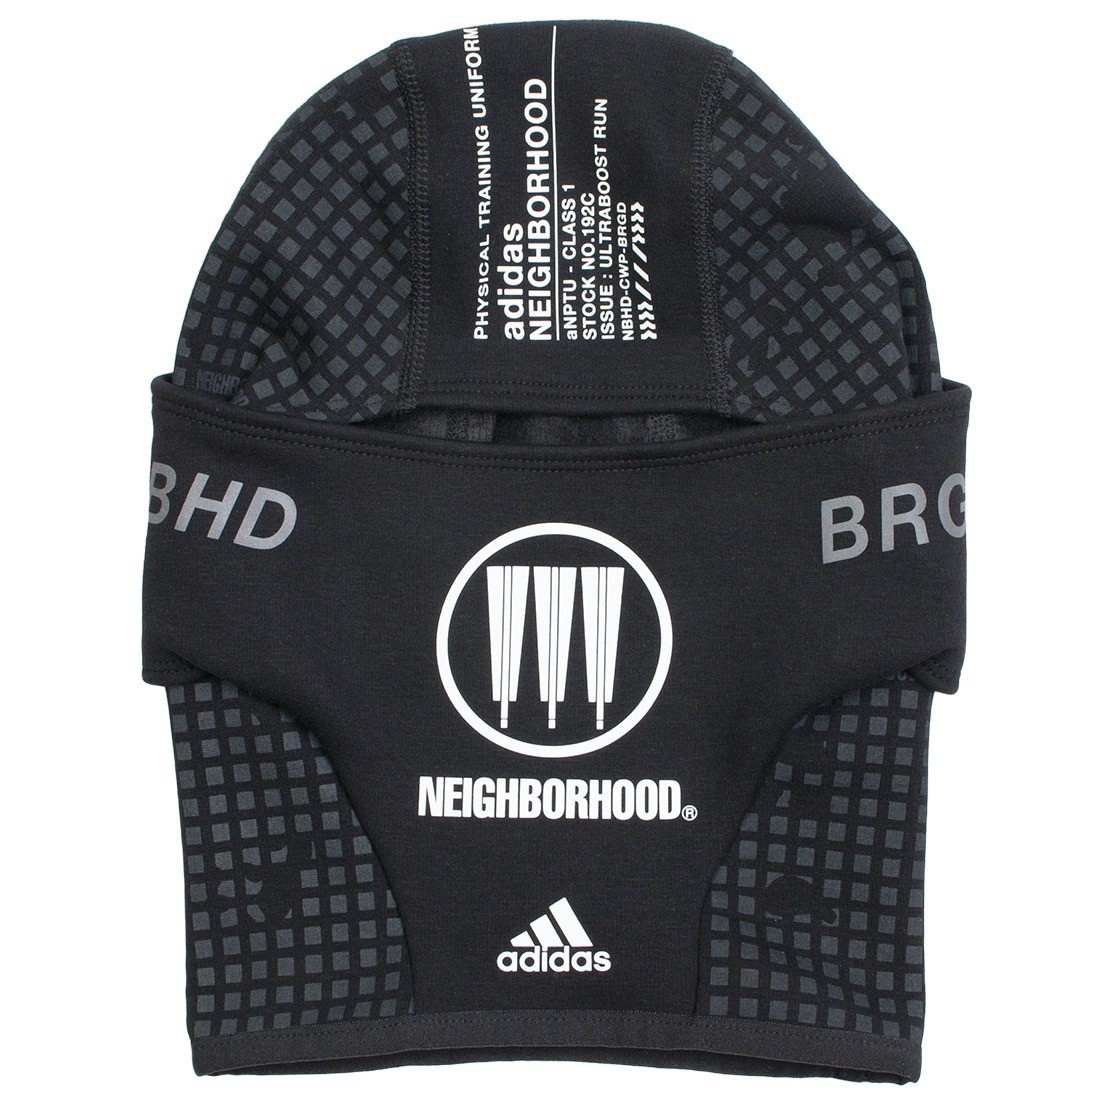 Adidas x Neighborhood NBHD Balaclava Ski Mask (black)